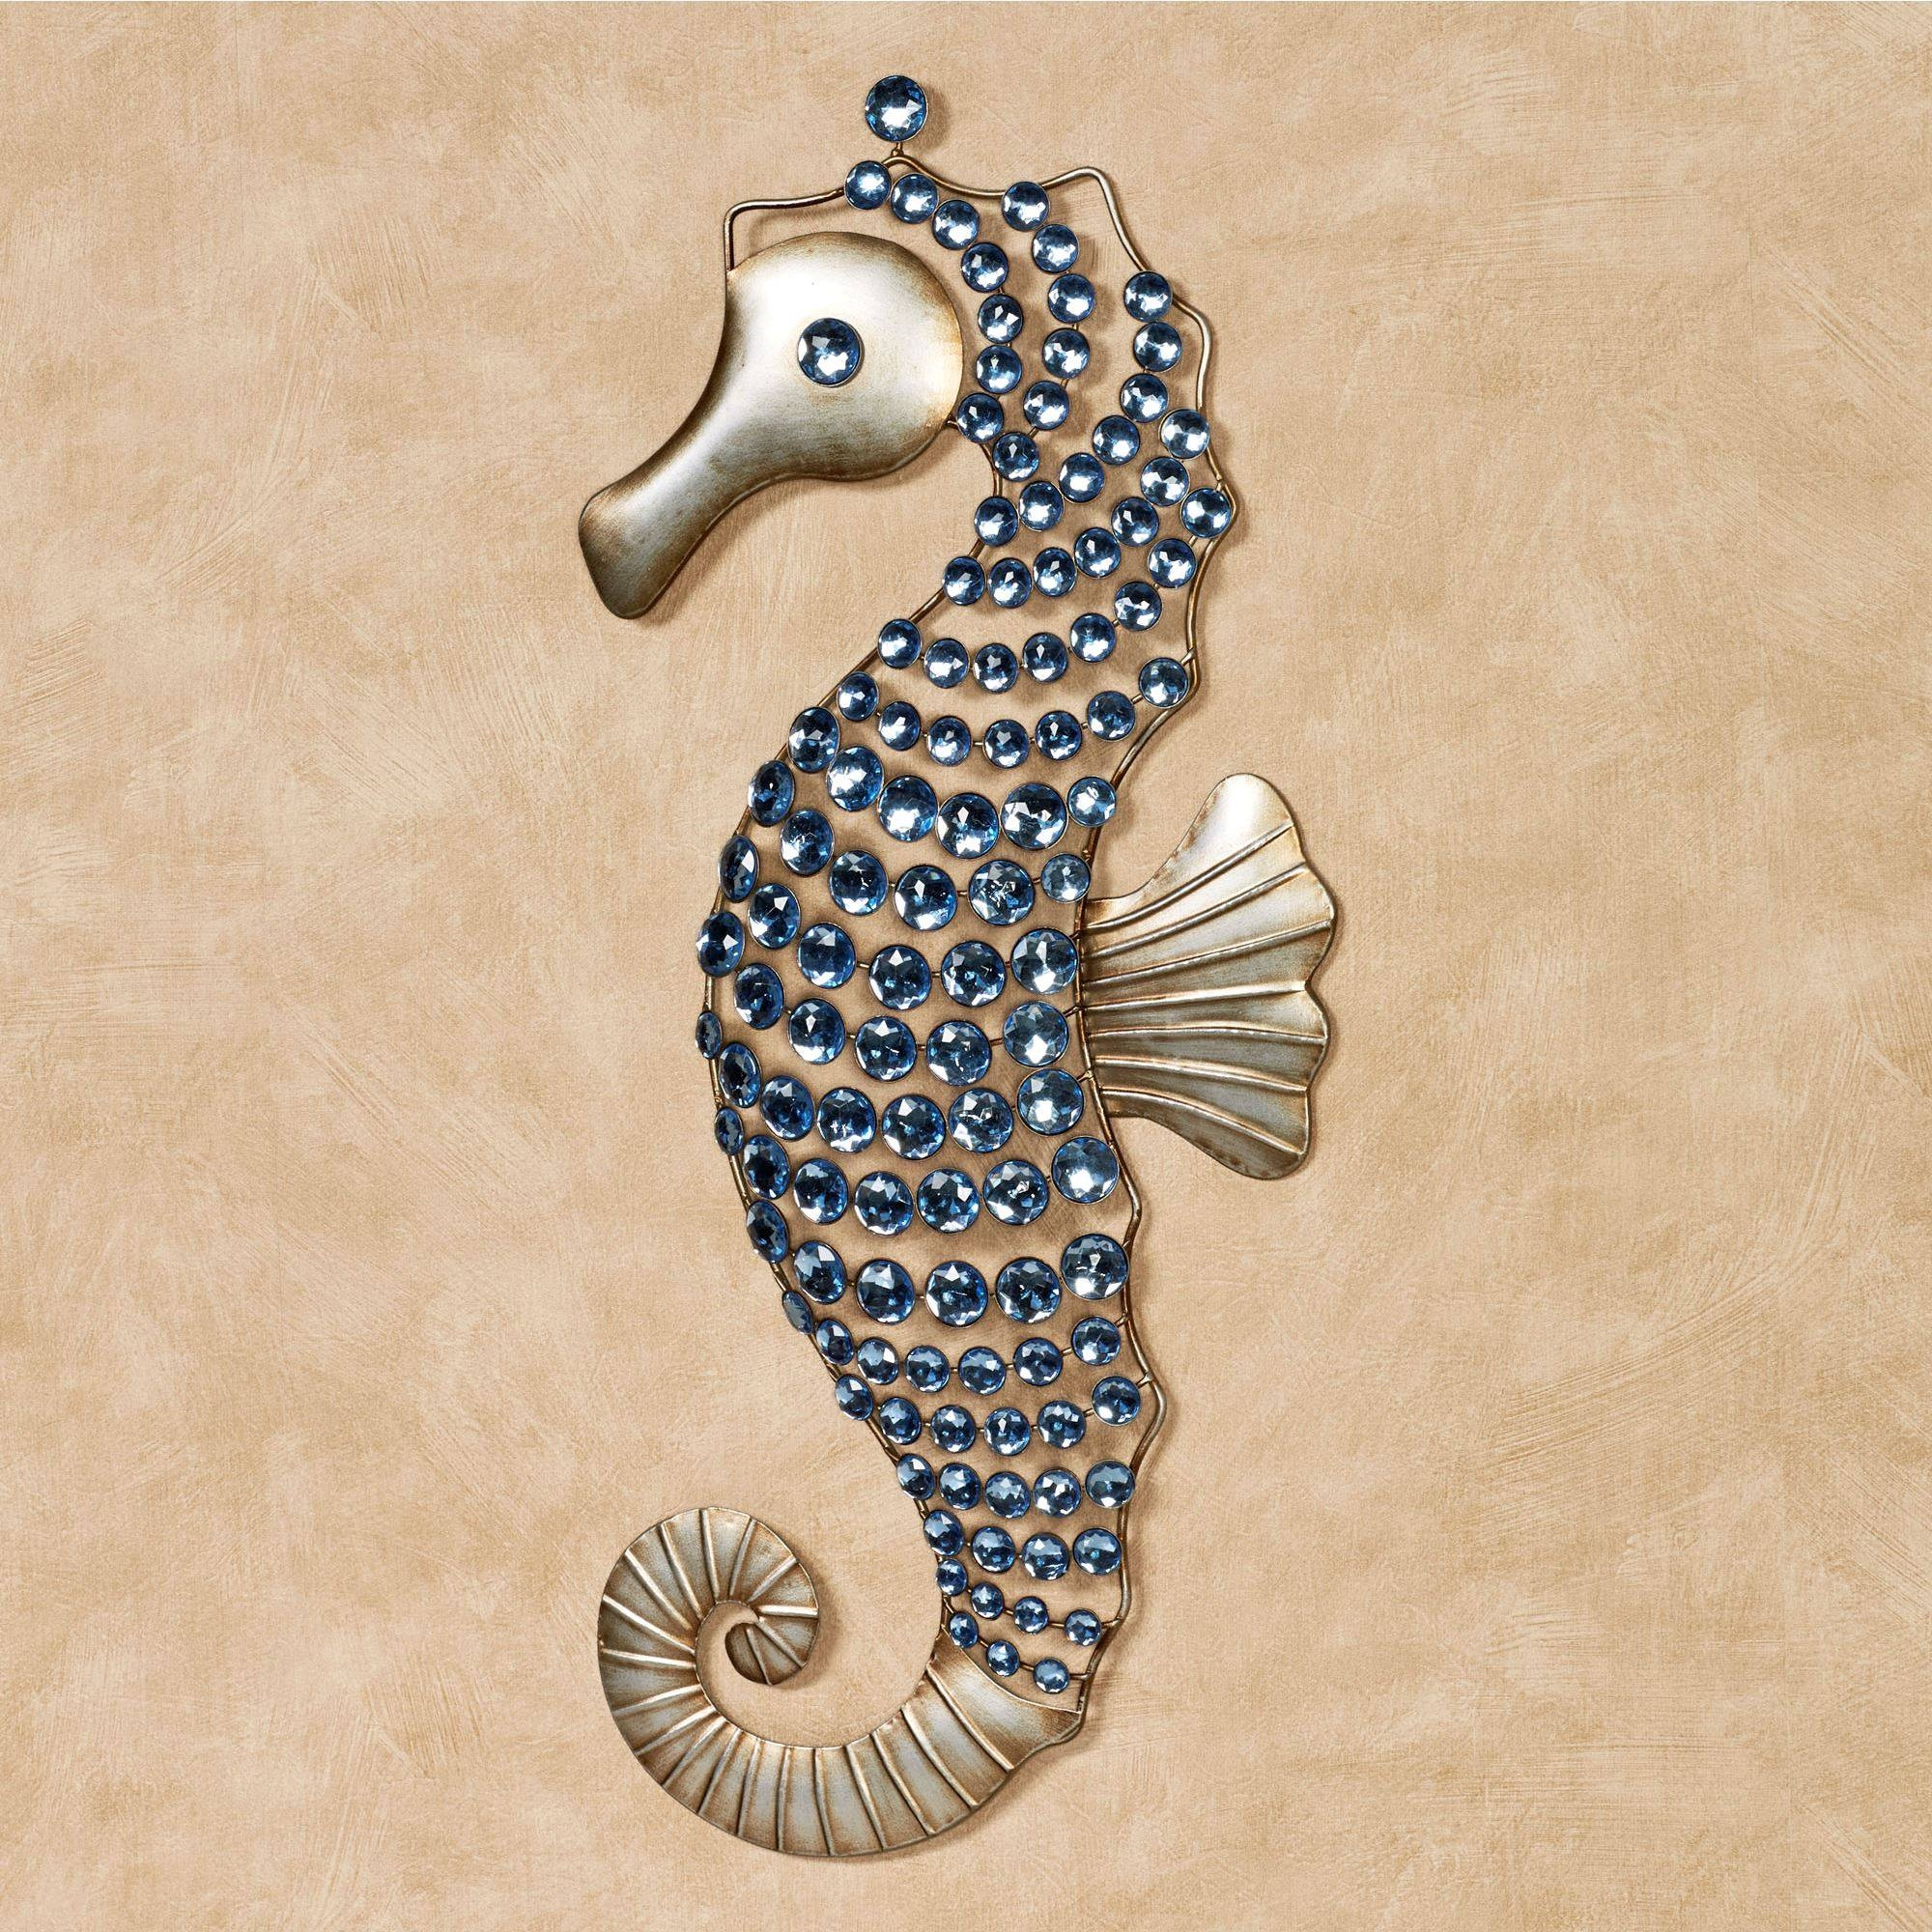 Seahorse Gems Metal Wall Art In Latest Metal Animal Wall Art (View 18 of 20)